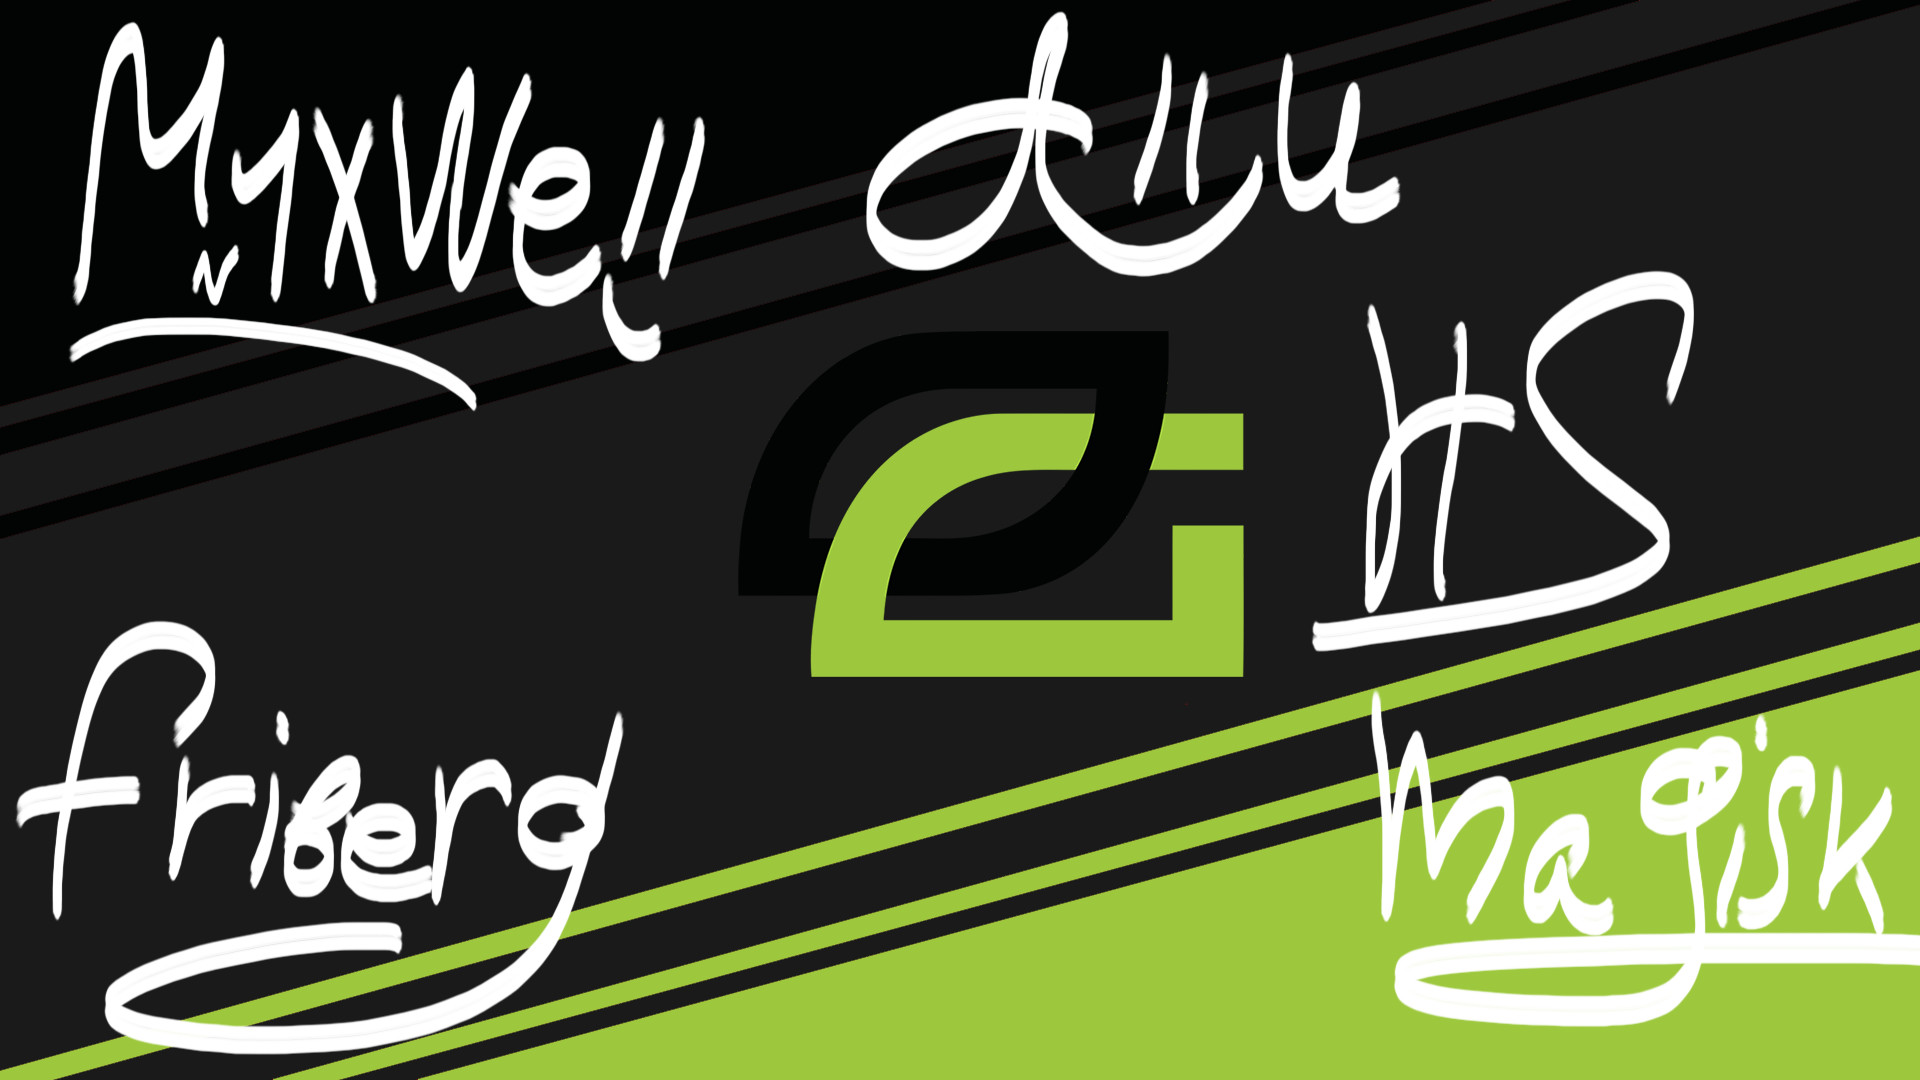 1920x1080 Optic Gaming player autograph By Ronofar